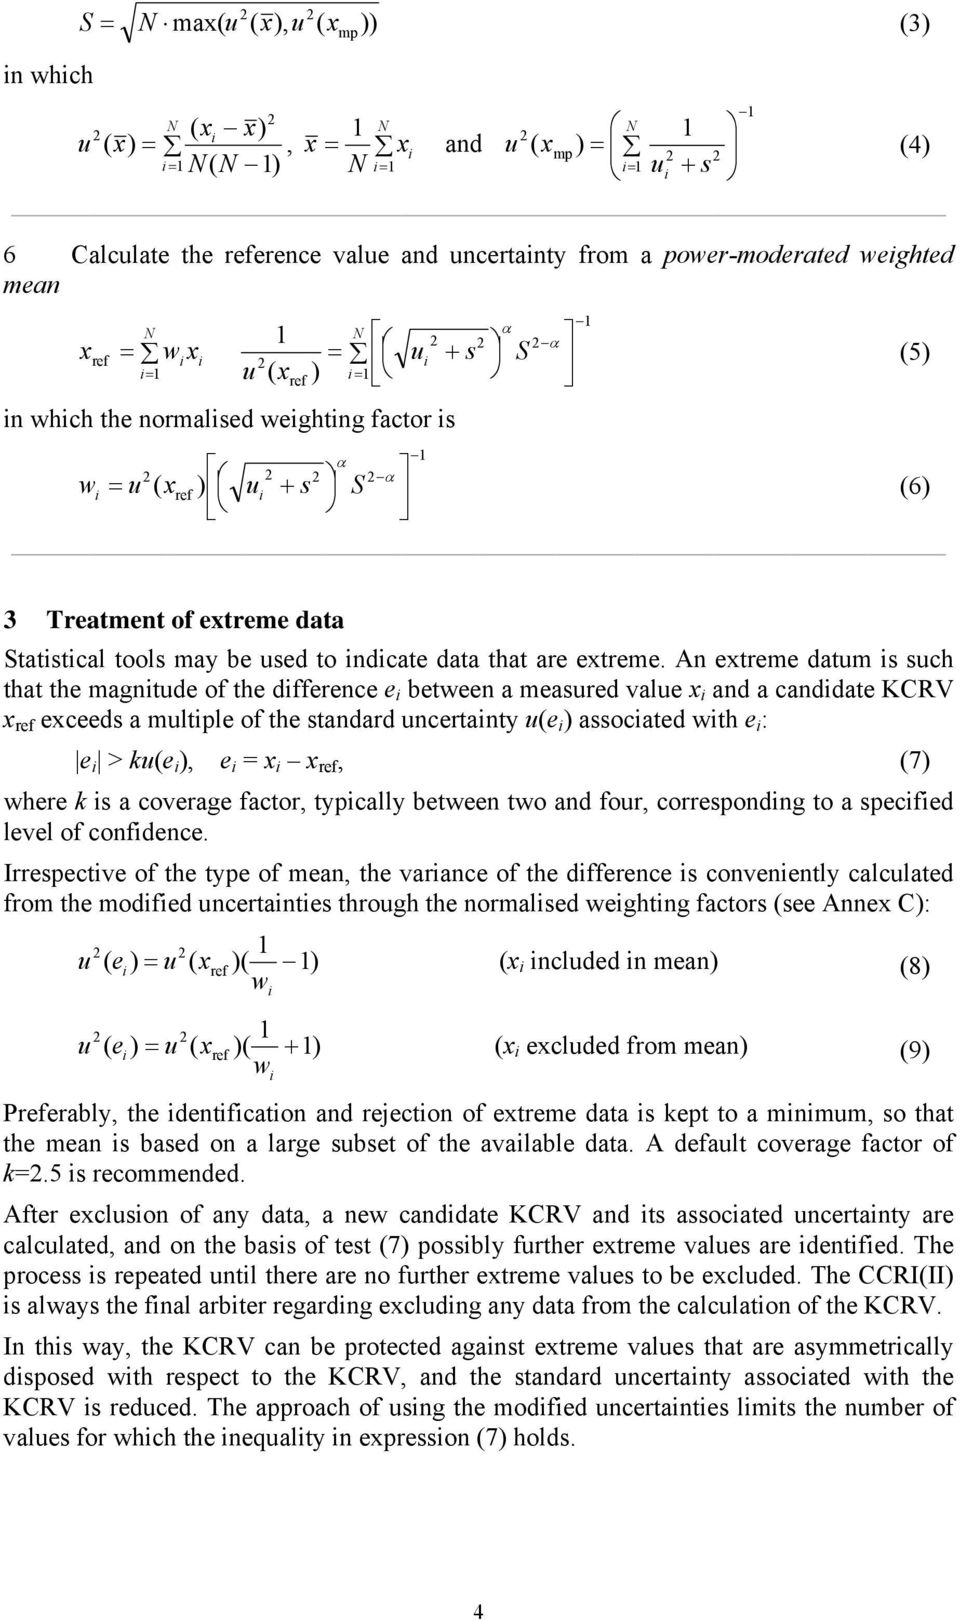 An extreme datum s such that the magntude of the dfference e between a measured value x and a canddate KCRV x exceeds a multple of the standard uncertanty u(e assocated wth e : e > ku(e, e = x x, (7